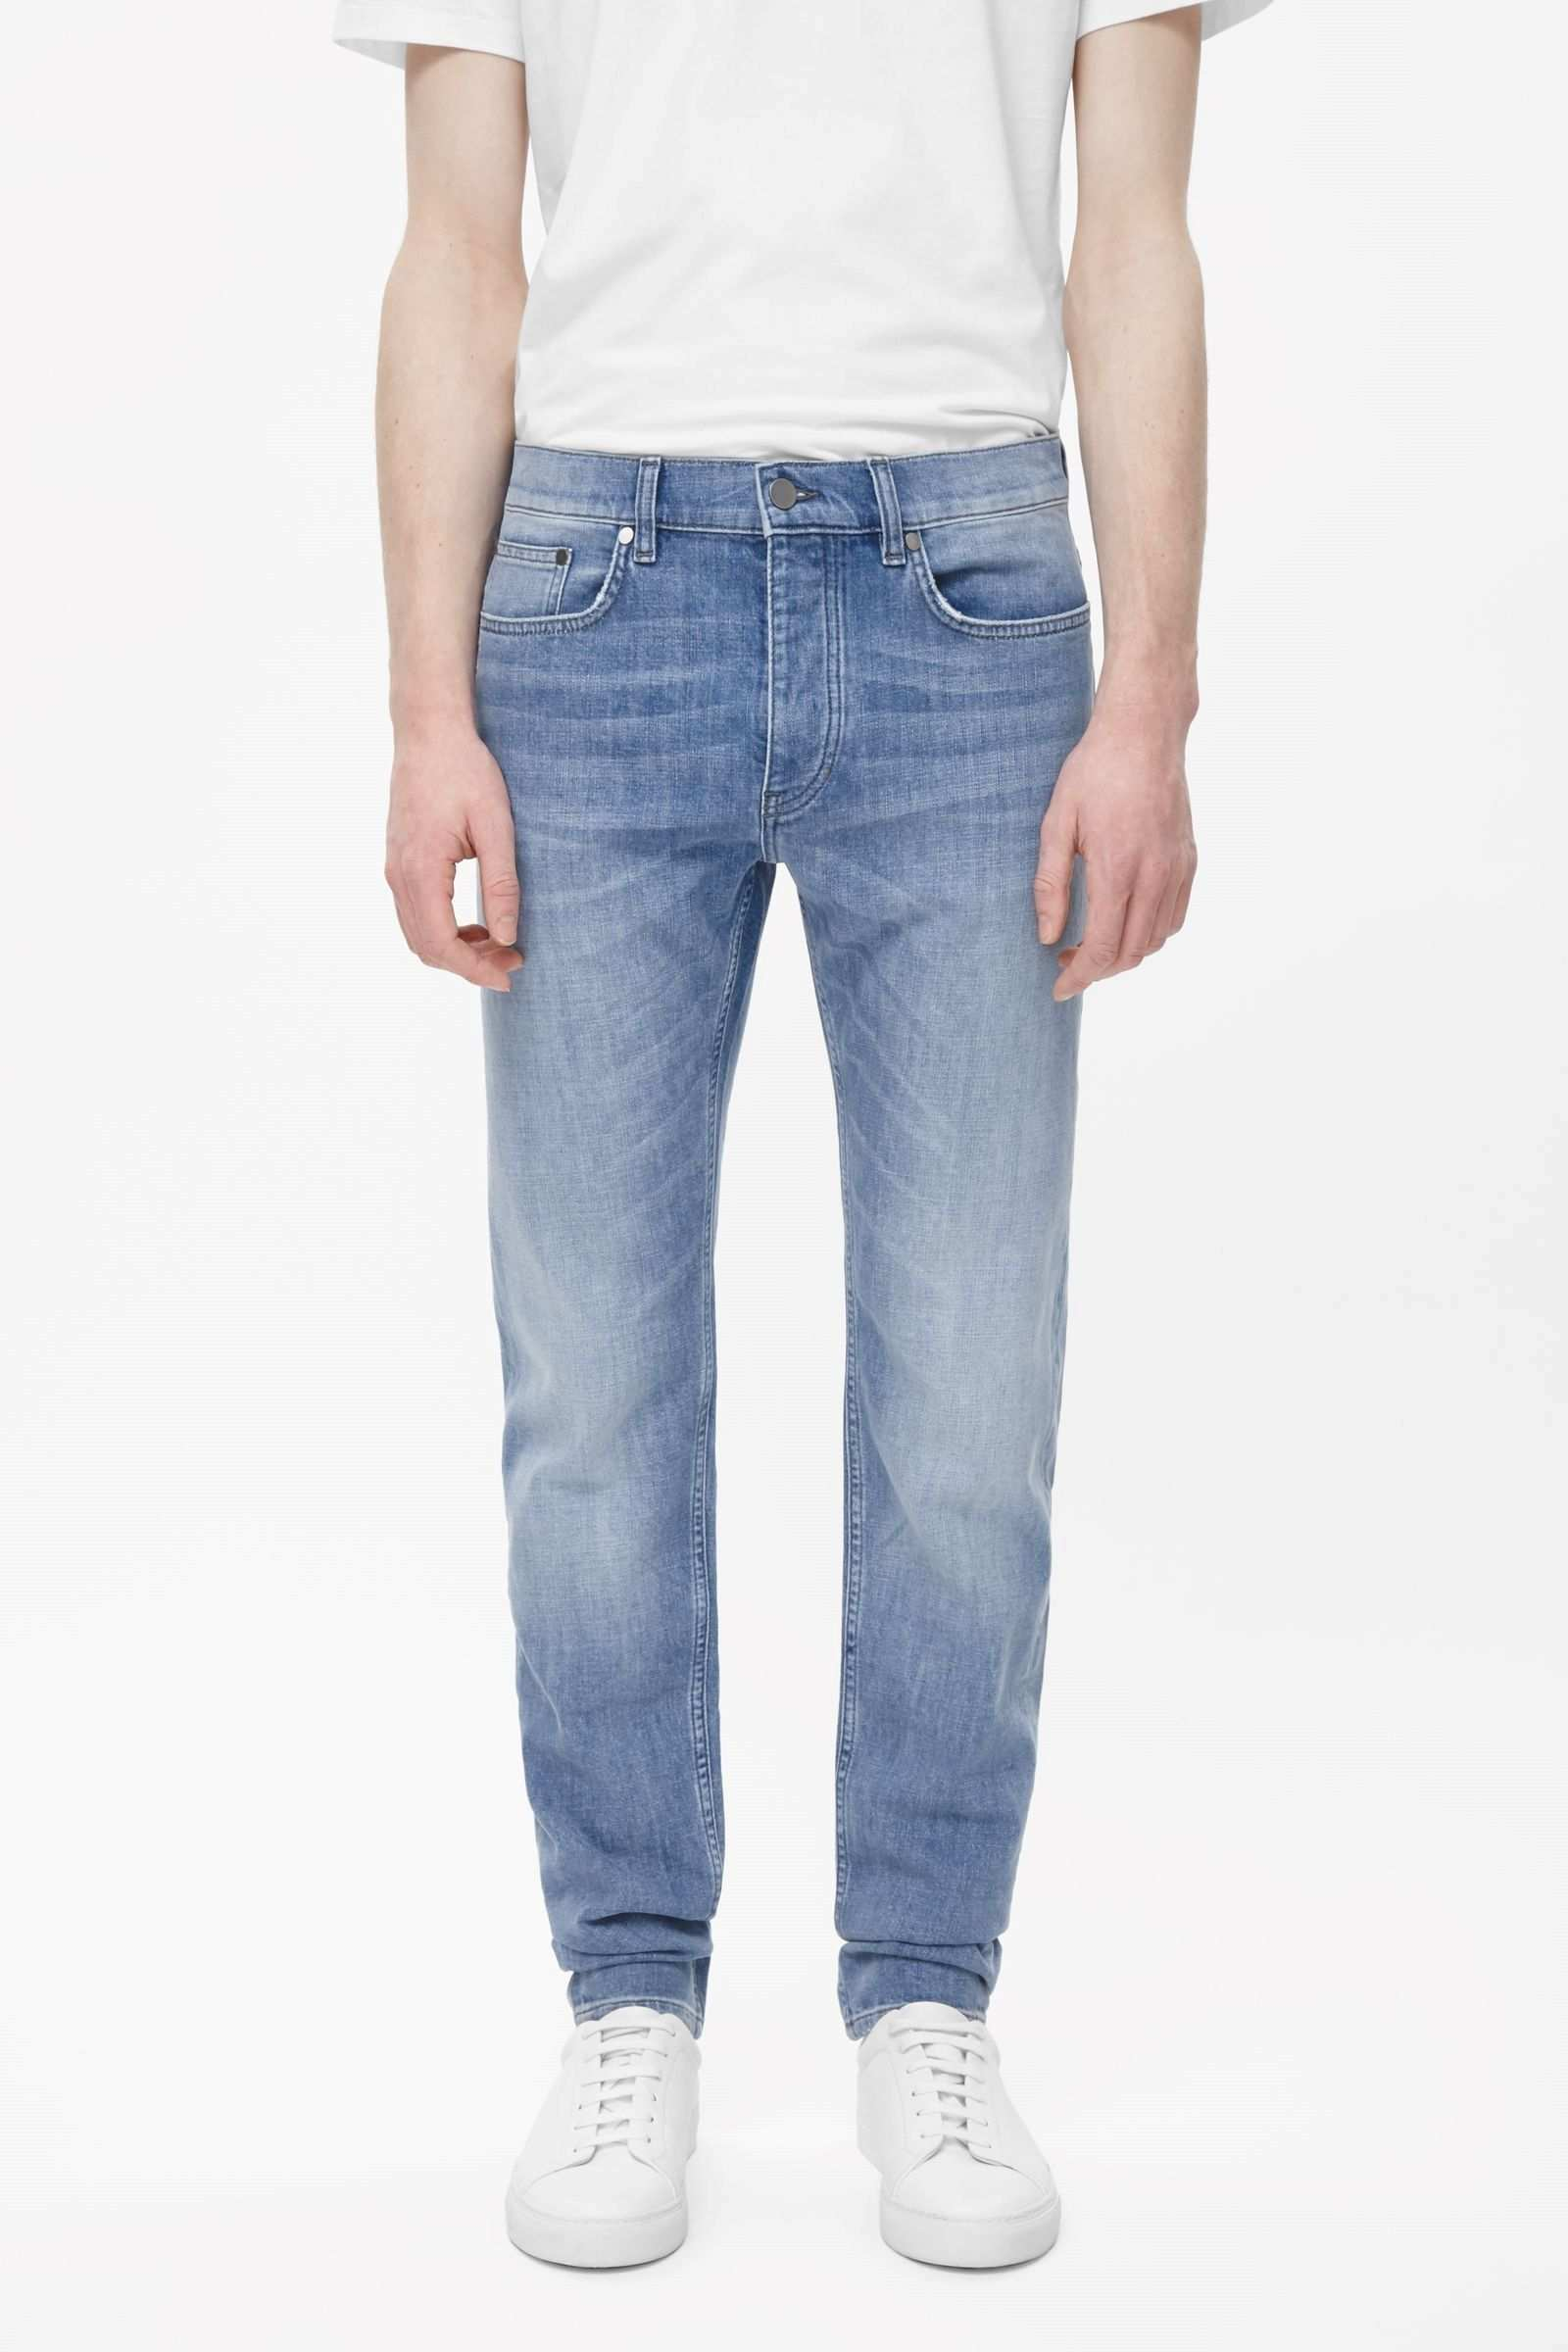 Cos Image 2 Of Slim Tapered Jeans In Blue Latest Clothes For Men Mens Outfits Tapered Jeans